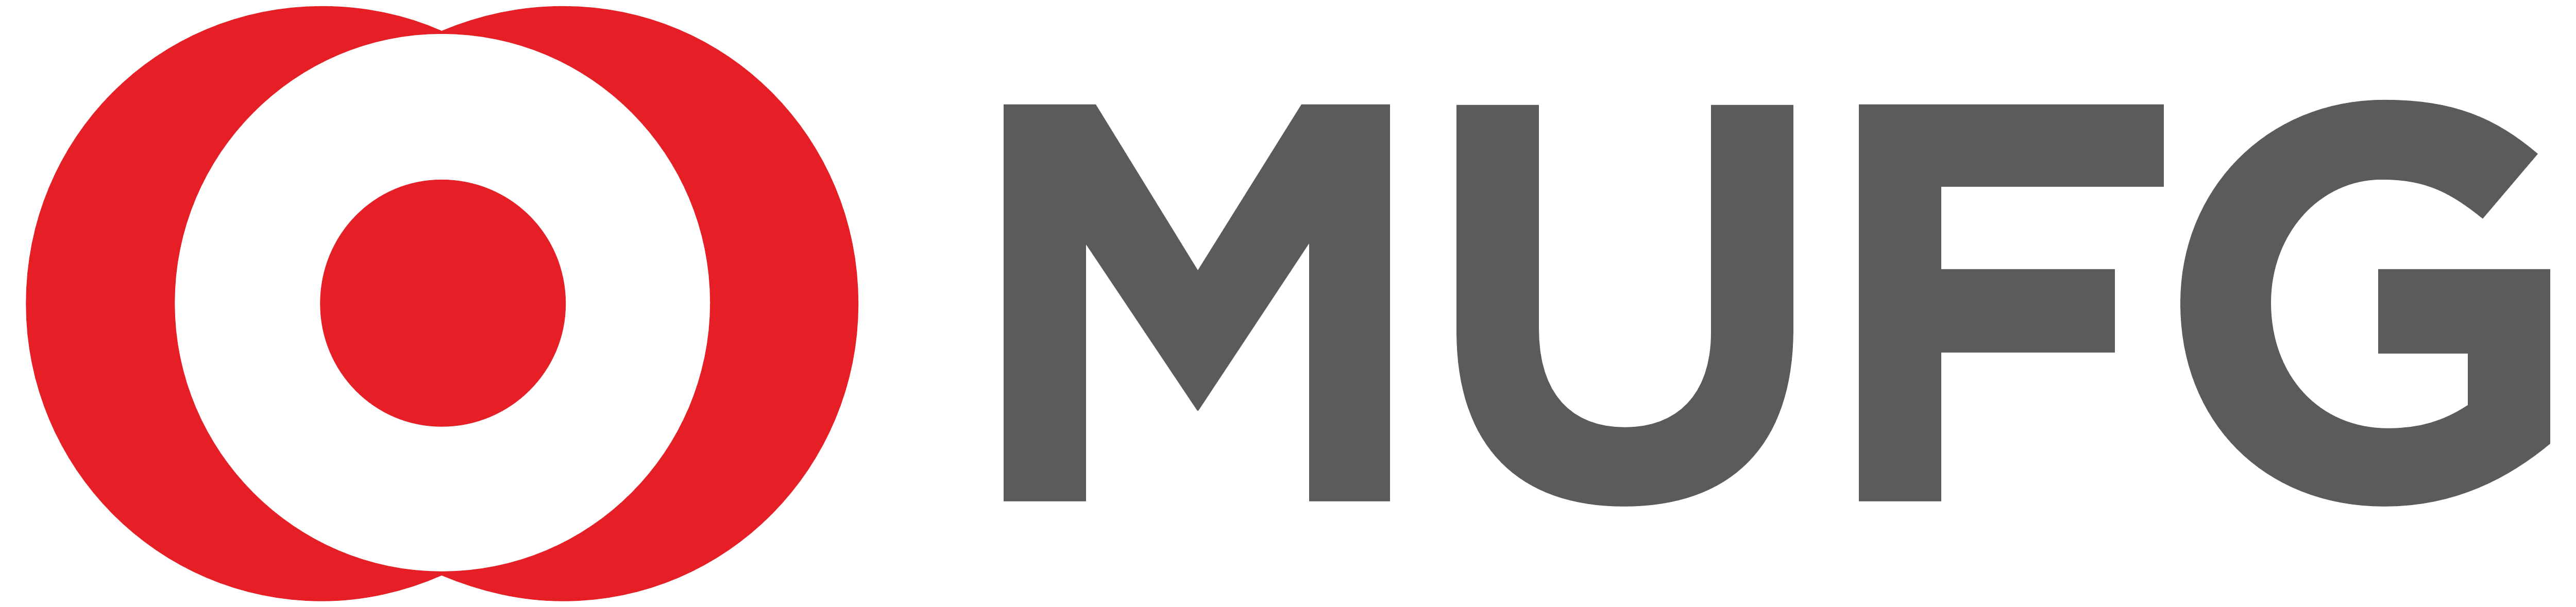 MUFG_logo_Mitsubishi_UFJ_Financial_Group